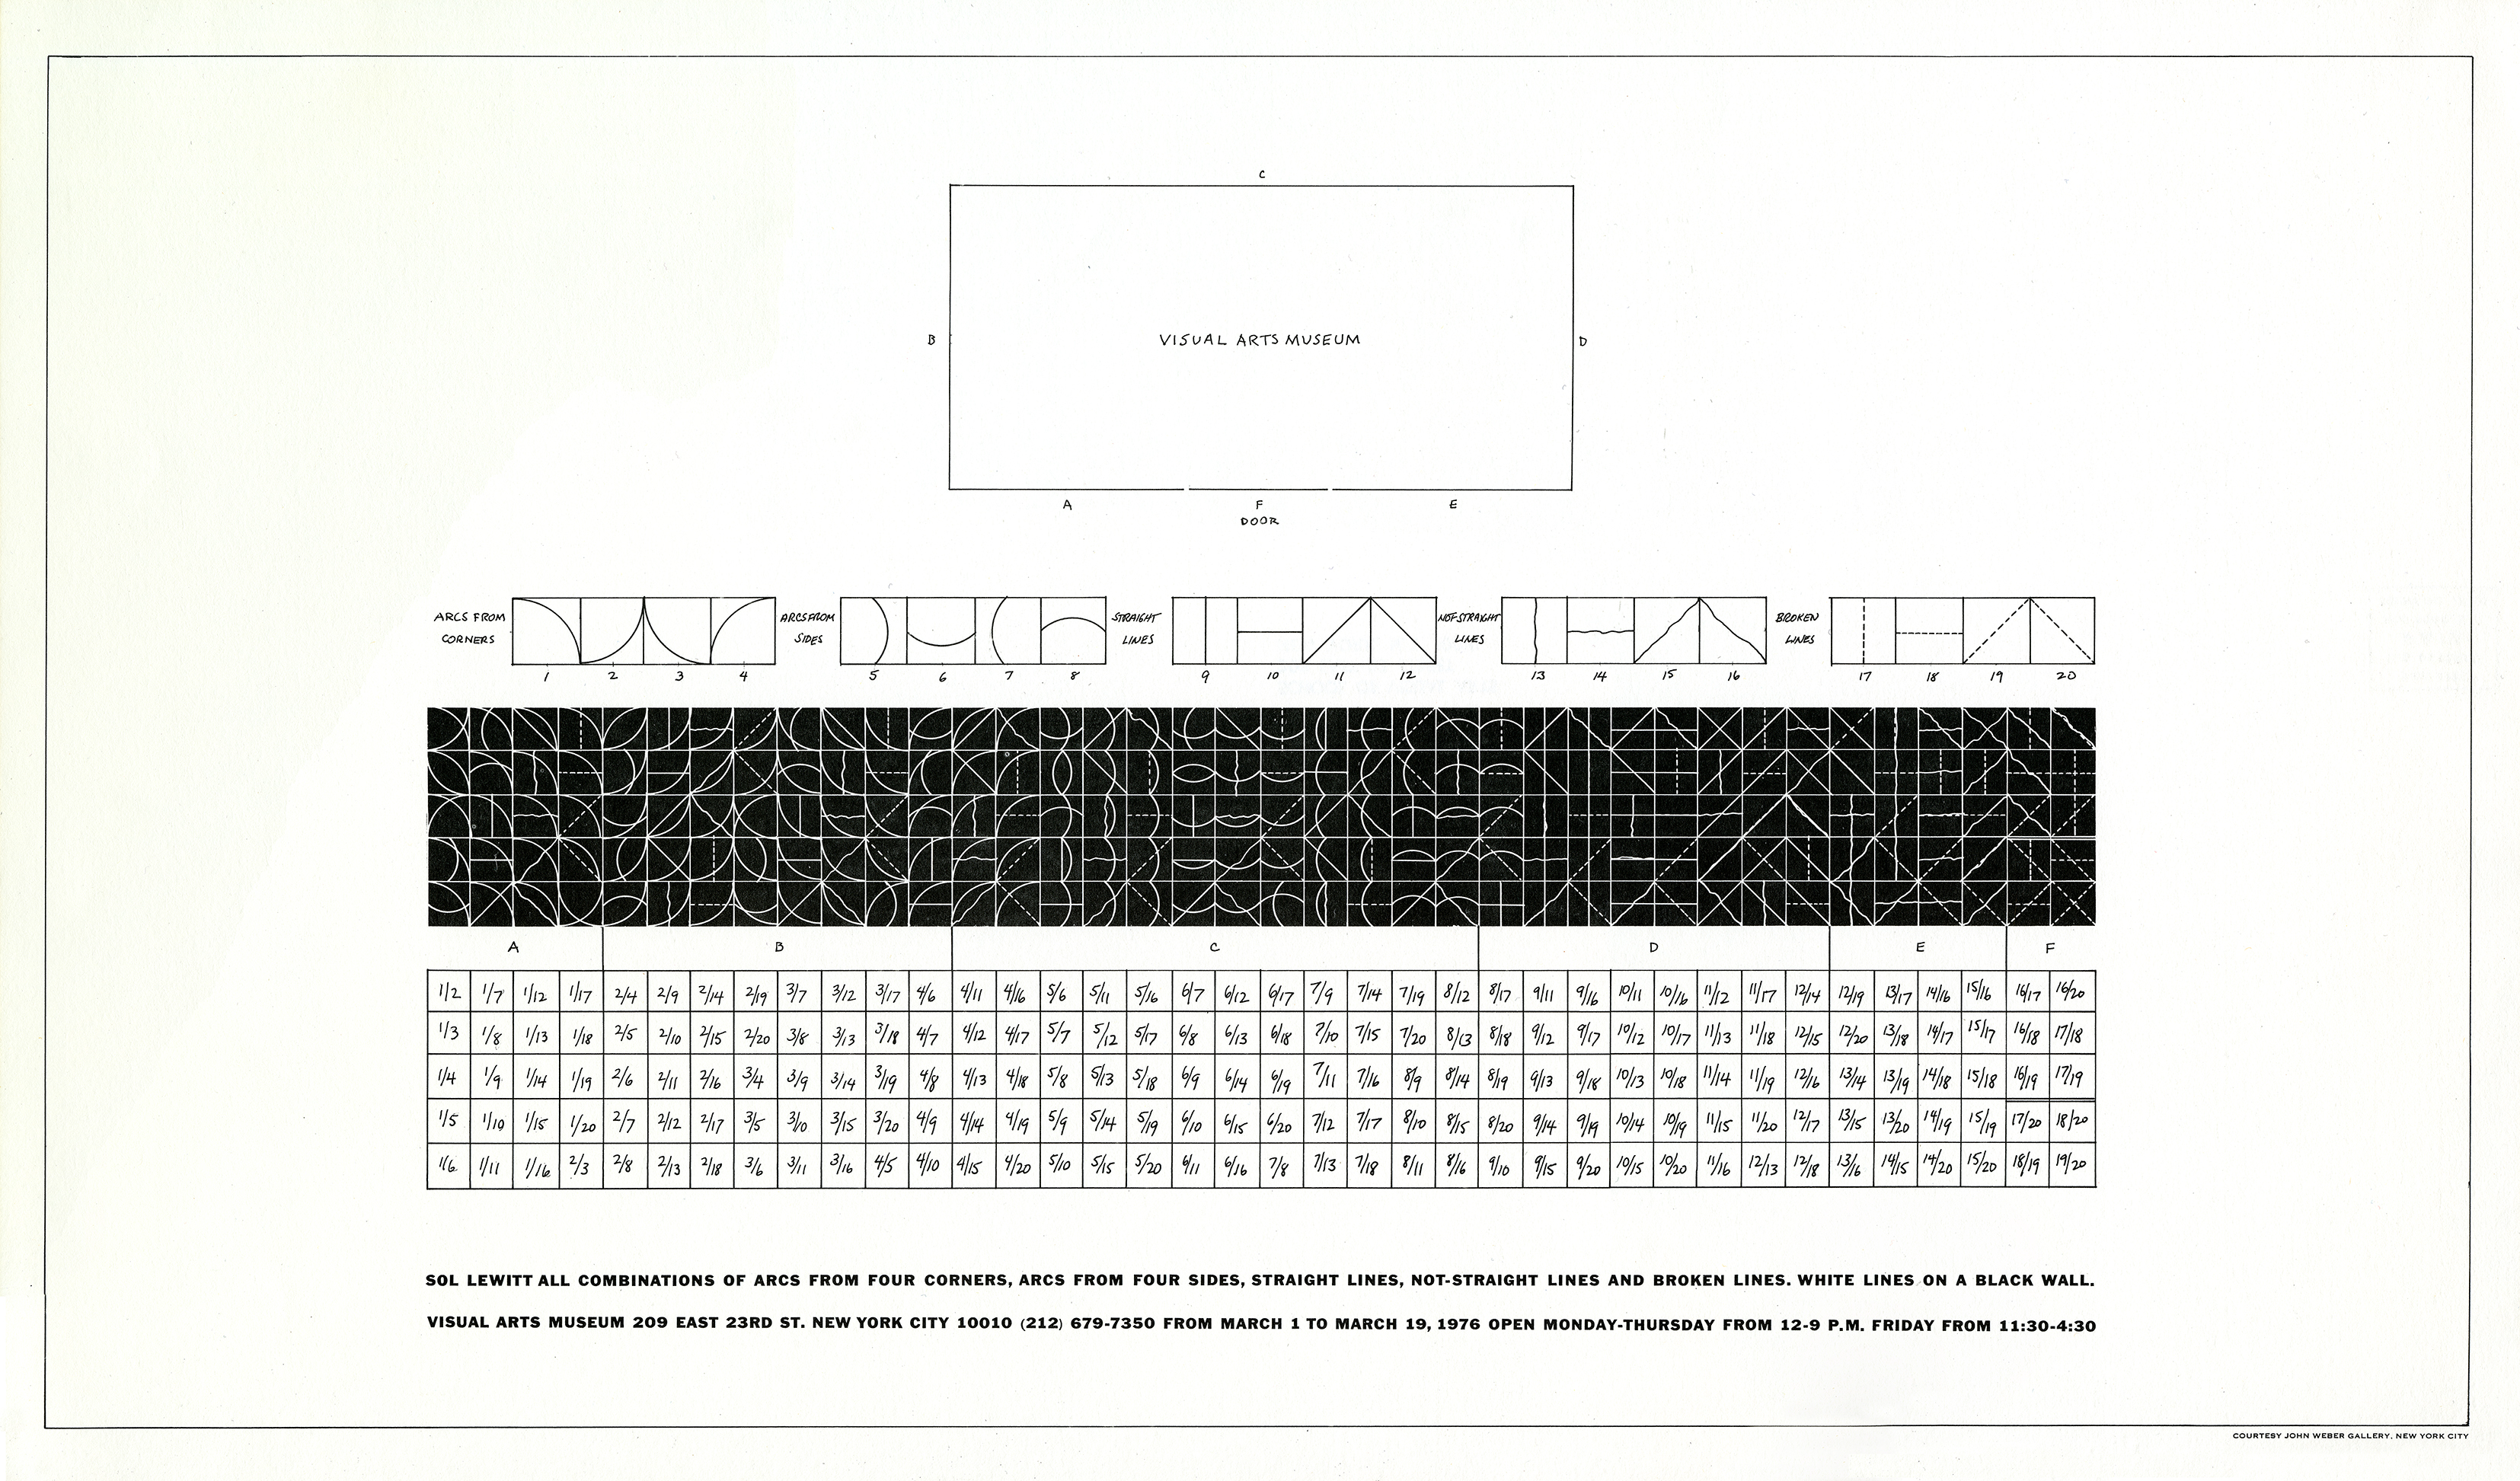 Sol LeWitt wall drawing instructions. At top, floor plan showing placement of drawing. Below, a row of 5 sets of 4 boxes, numbered 1 through 20, each depicting different types of lines (arcs from corners, arcs from sides, straight lines, non-straight lines, broken lines), above 2 grids demonstrating every combination of 2 lines from 5 types of lines (as combination of lines in white on black and as combination of two numbers from first row). At bottom, the title, location, and hours.